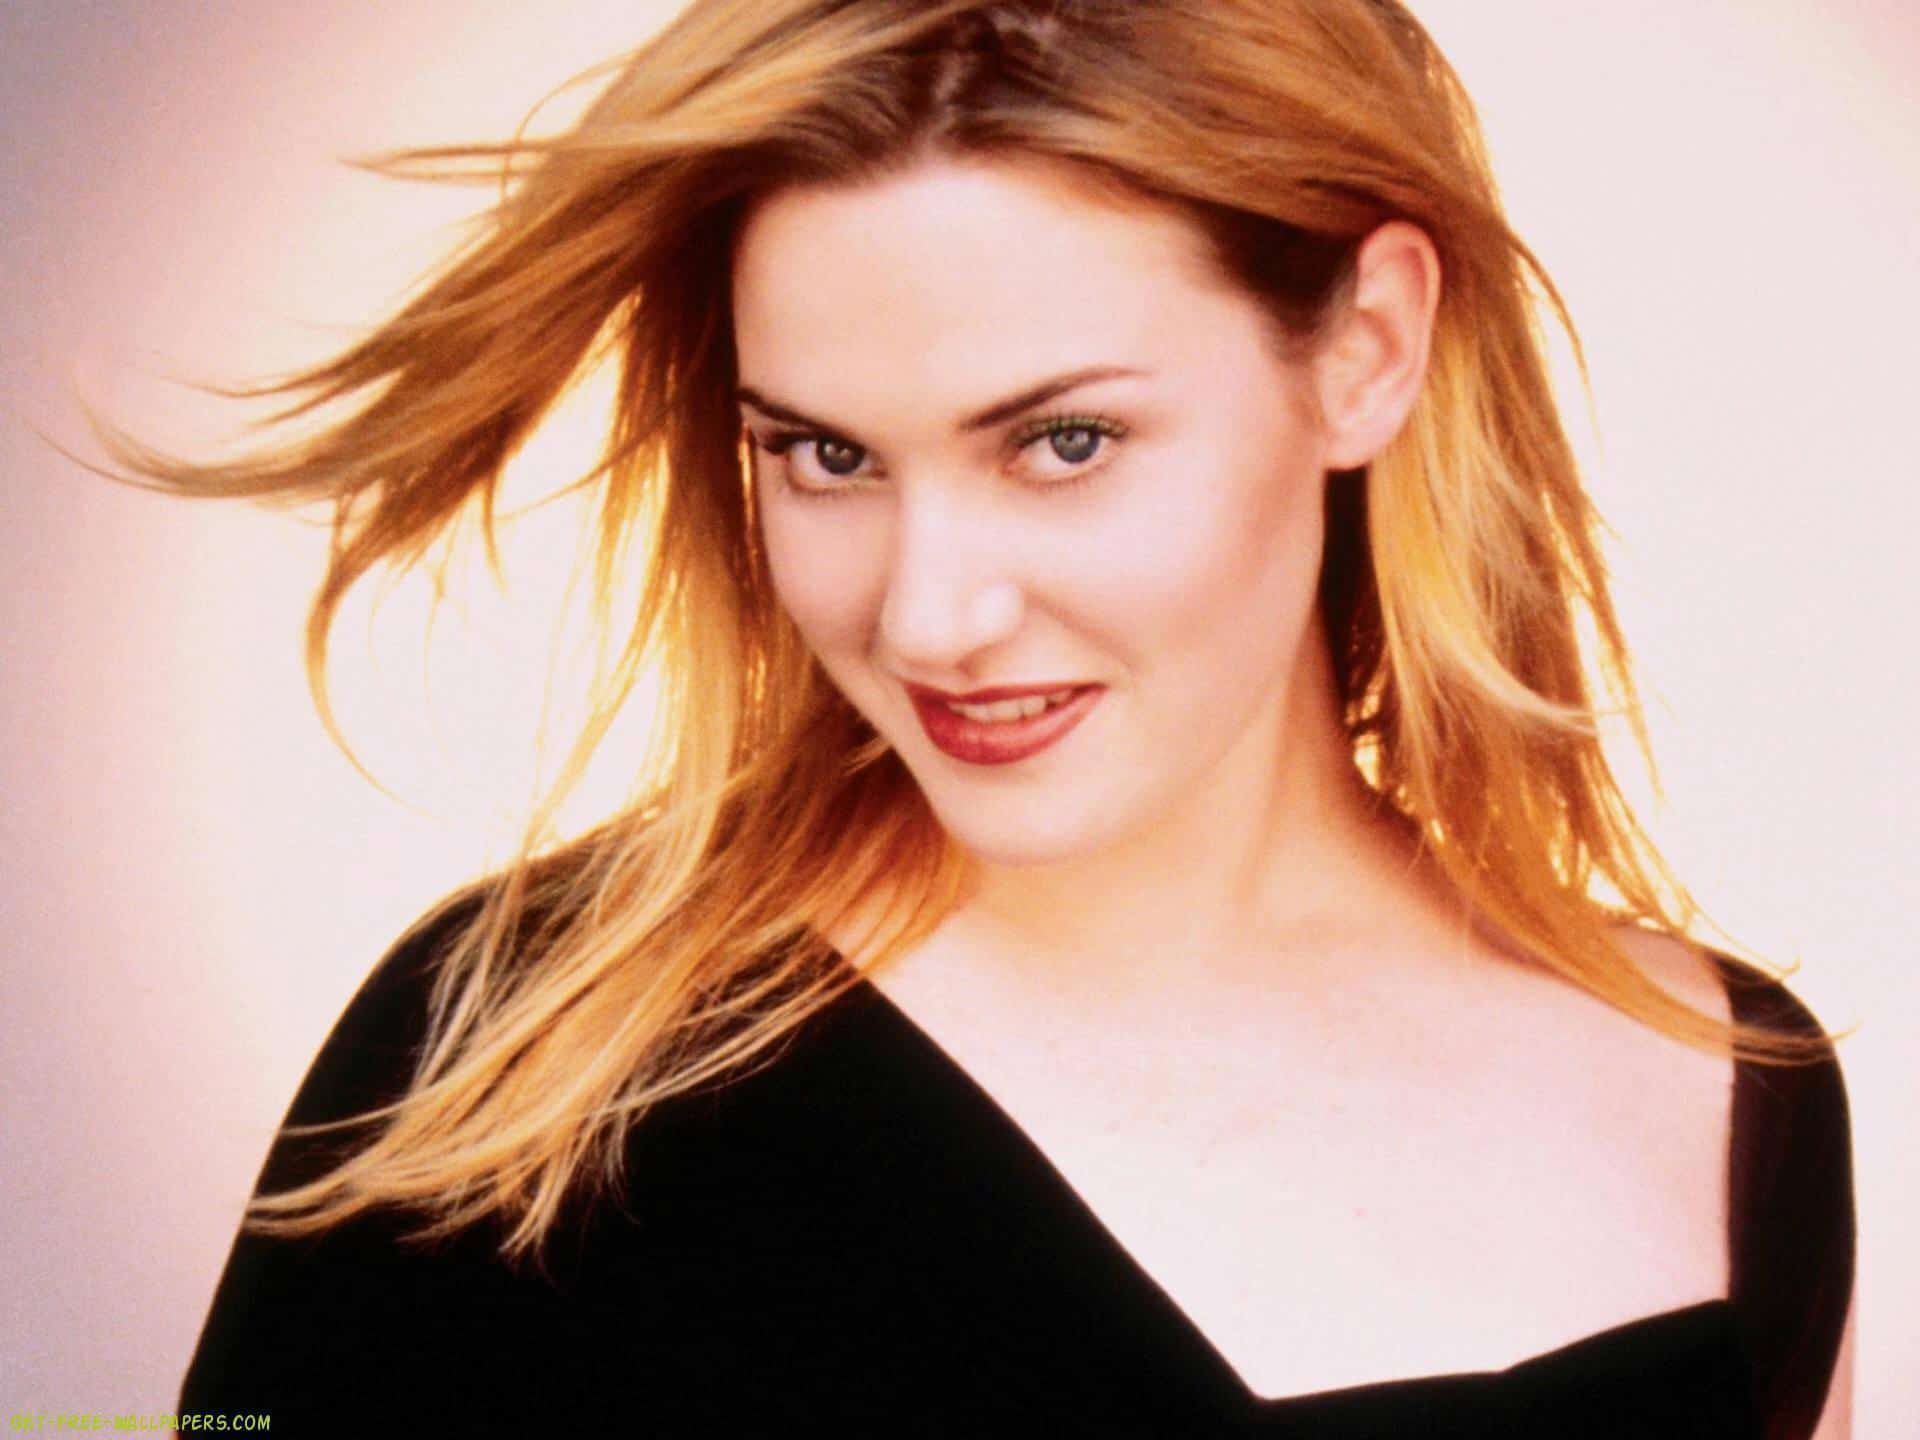 Kate Winslet net worth, Kate Winslet net worth 2020, Kate Winslet net worth 2021, Who Is Kate Winslet, Kate Winslet, Kate Winslet Facts, Kate Winslet measurements, Celebrity Net Worth, who is Kate Winslet, what is Kate Winslet IQ, Is Kate Winslet a billionaire, what is Kate Winslet net worth, how much is Kate Winslet net worth in 2021? What is Kate Winslet's full name? What Kate Winslet nickname, how much money does Kate Winslet have 2021, How much does Kate Winslet make in a day, where did Kate Winslet spend her Money, Kate Winslet Cars Details, Kate Winslet Titanic